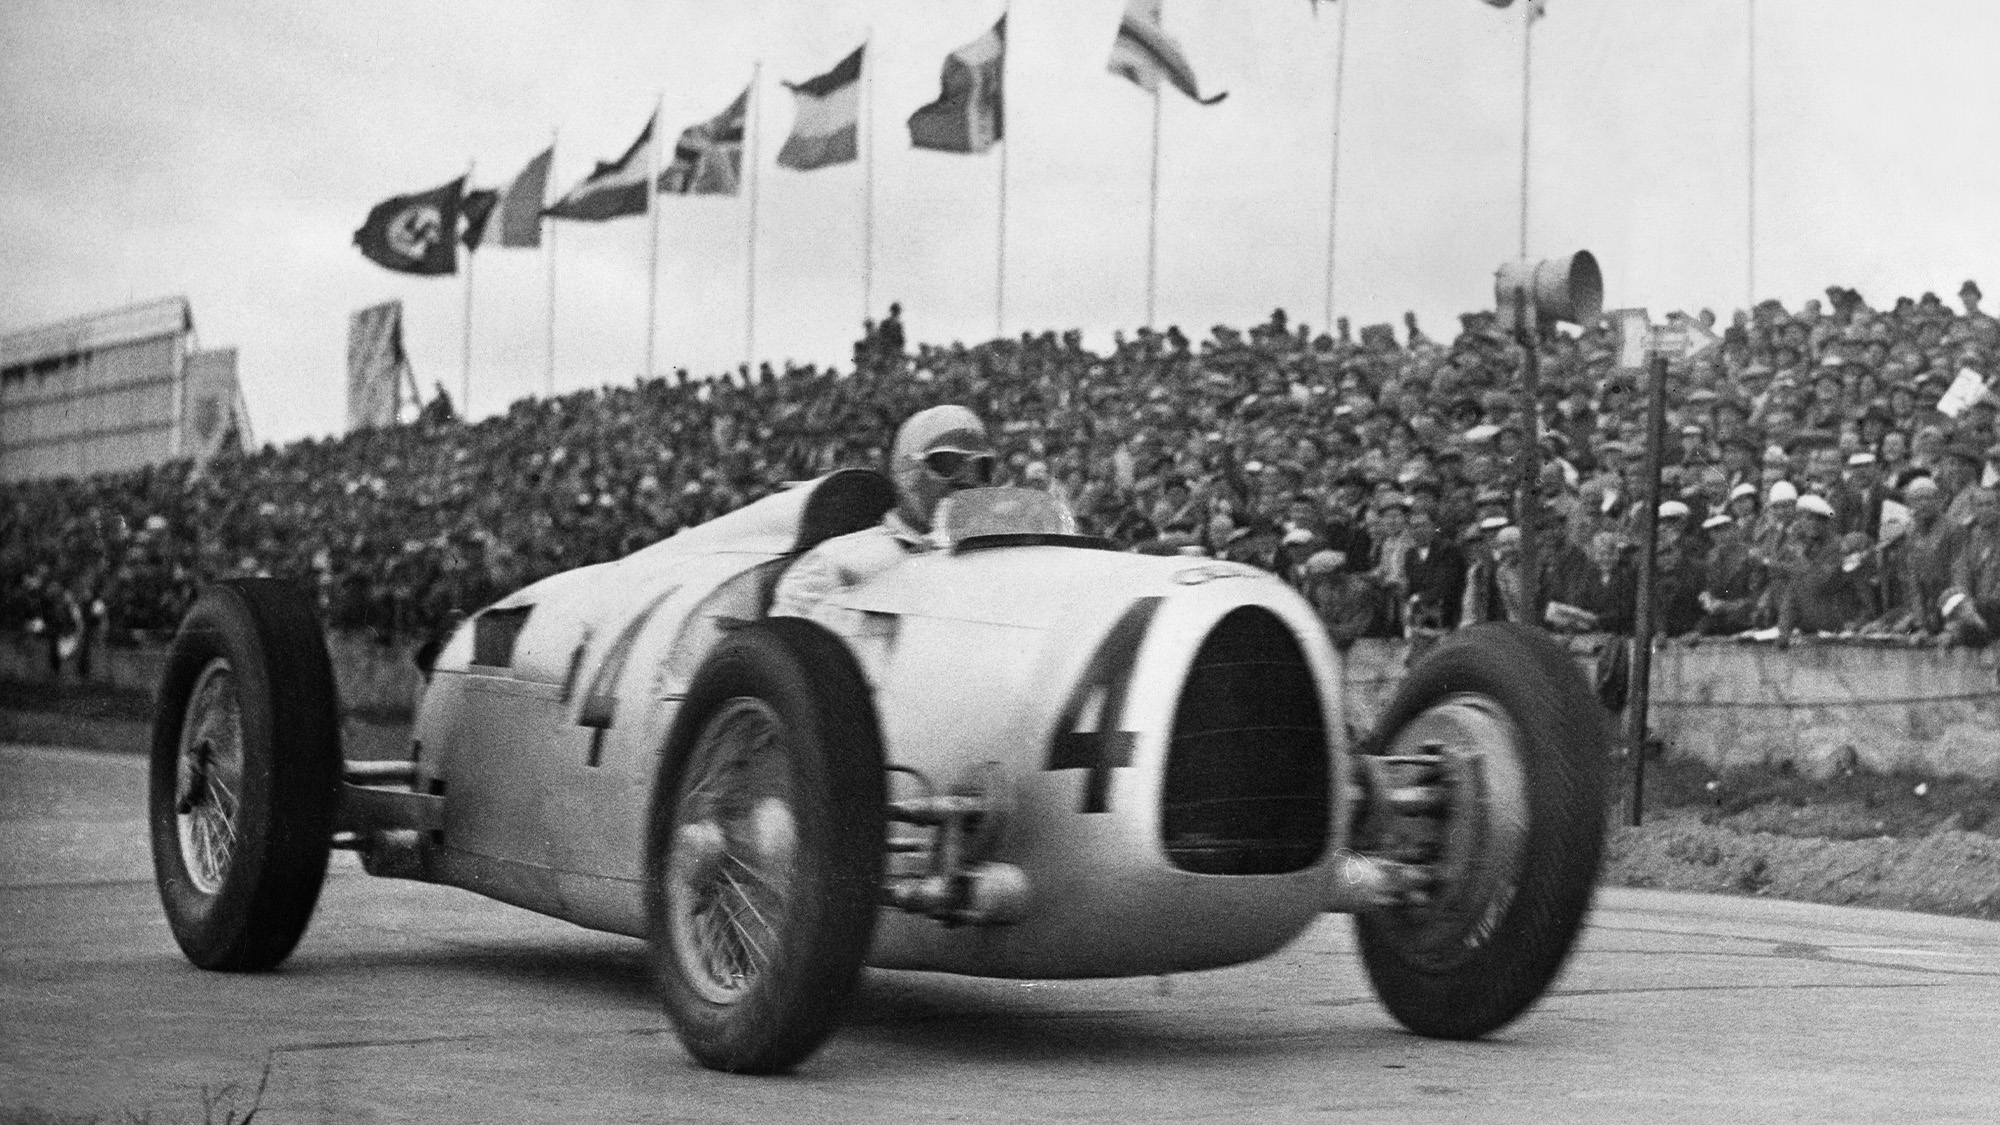 Bernd Rosemeyer for Auto Union in the 1936 German Grand Prix at the Nurburgring